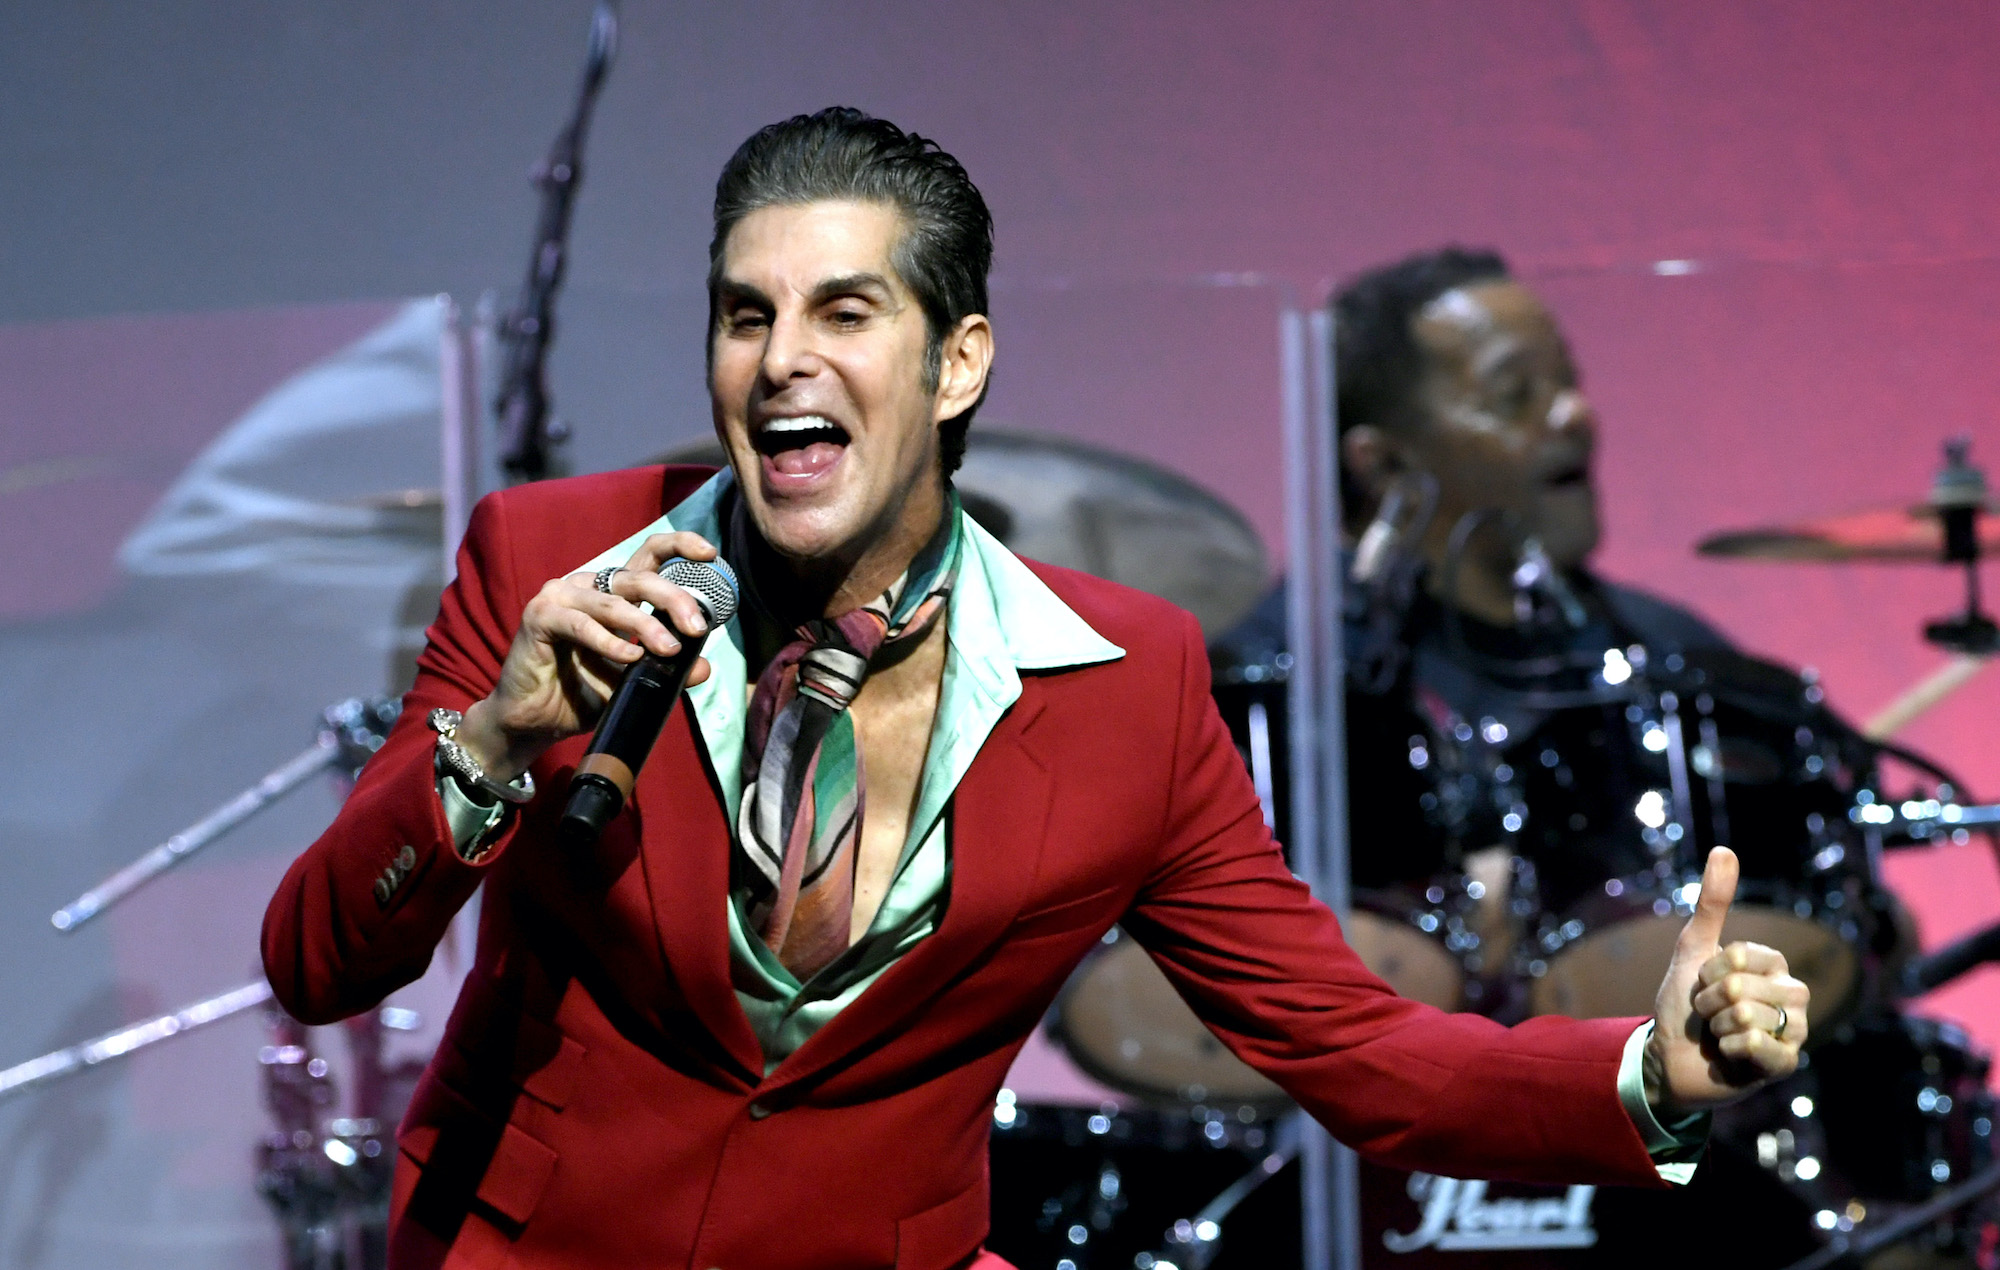 Perry Farrell, Jane's Addiction